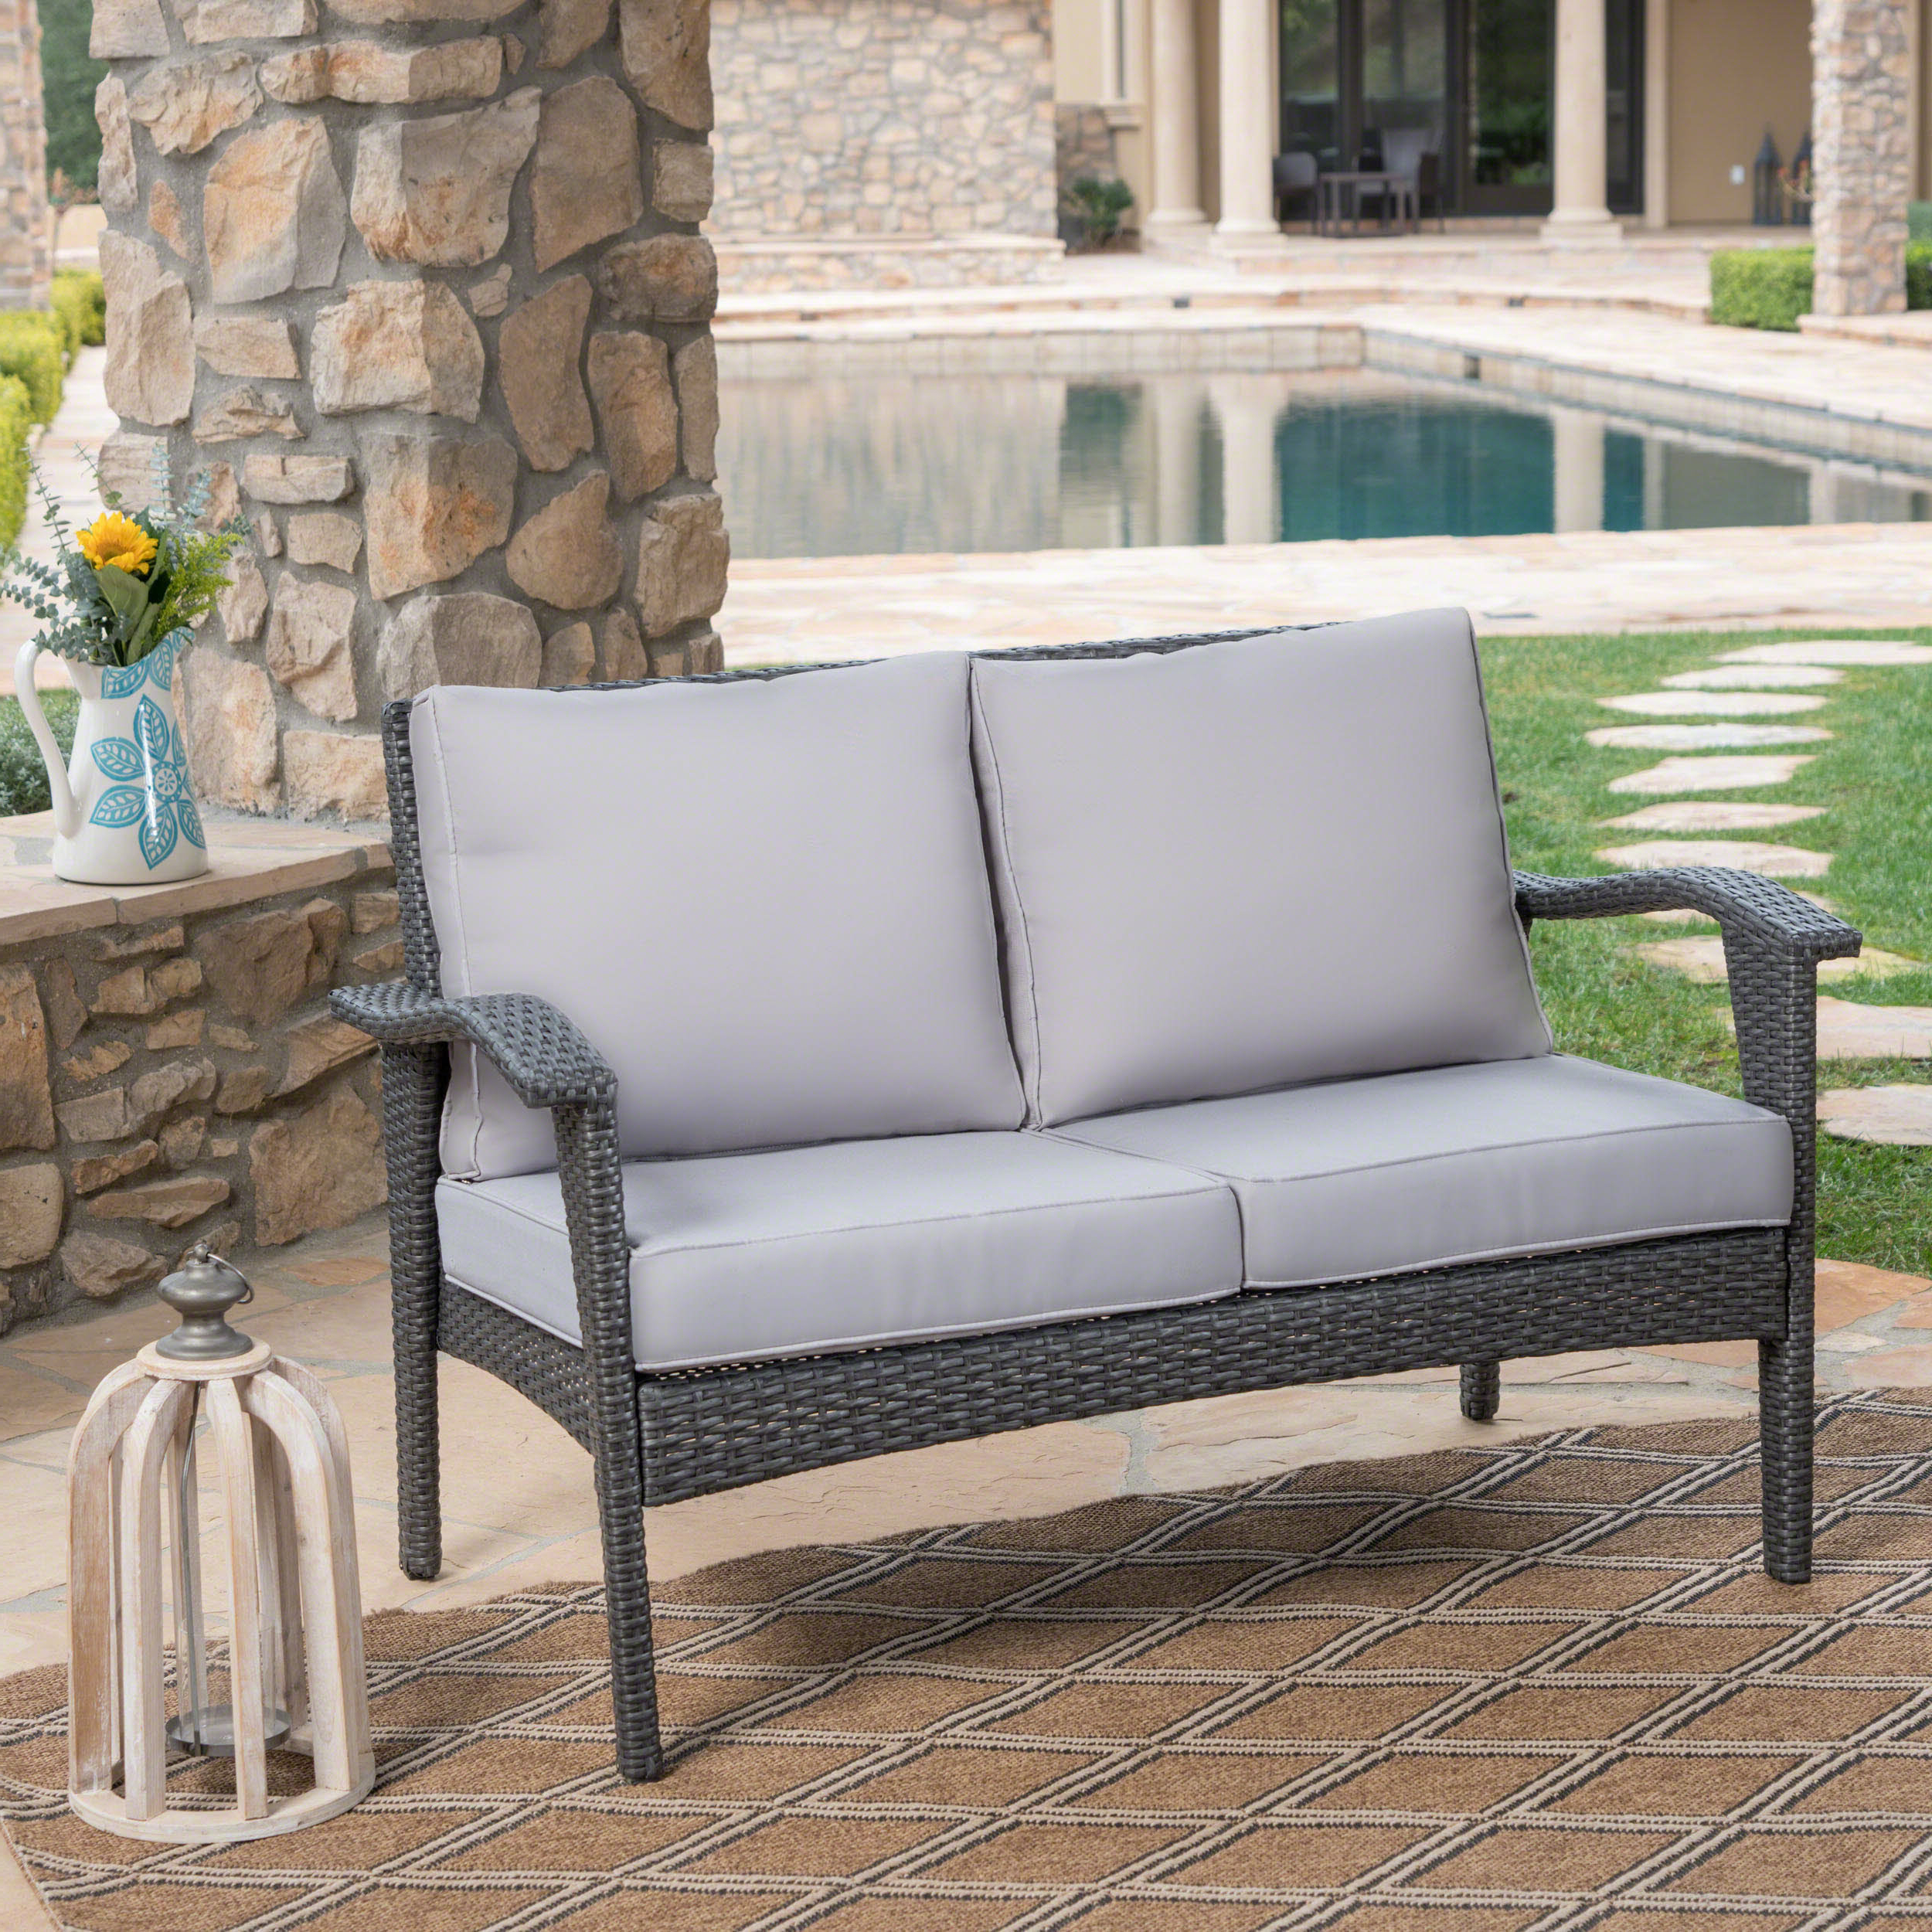 Preferred Baltic Loveseats With Cushions Throughout Hagler Outdoor Loveseat With Cushions (View 9 of 25)